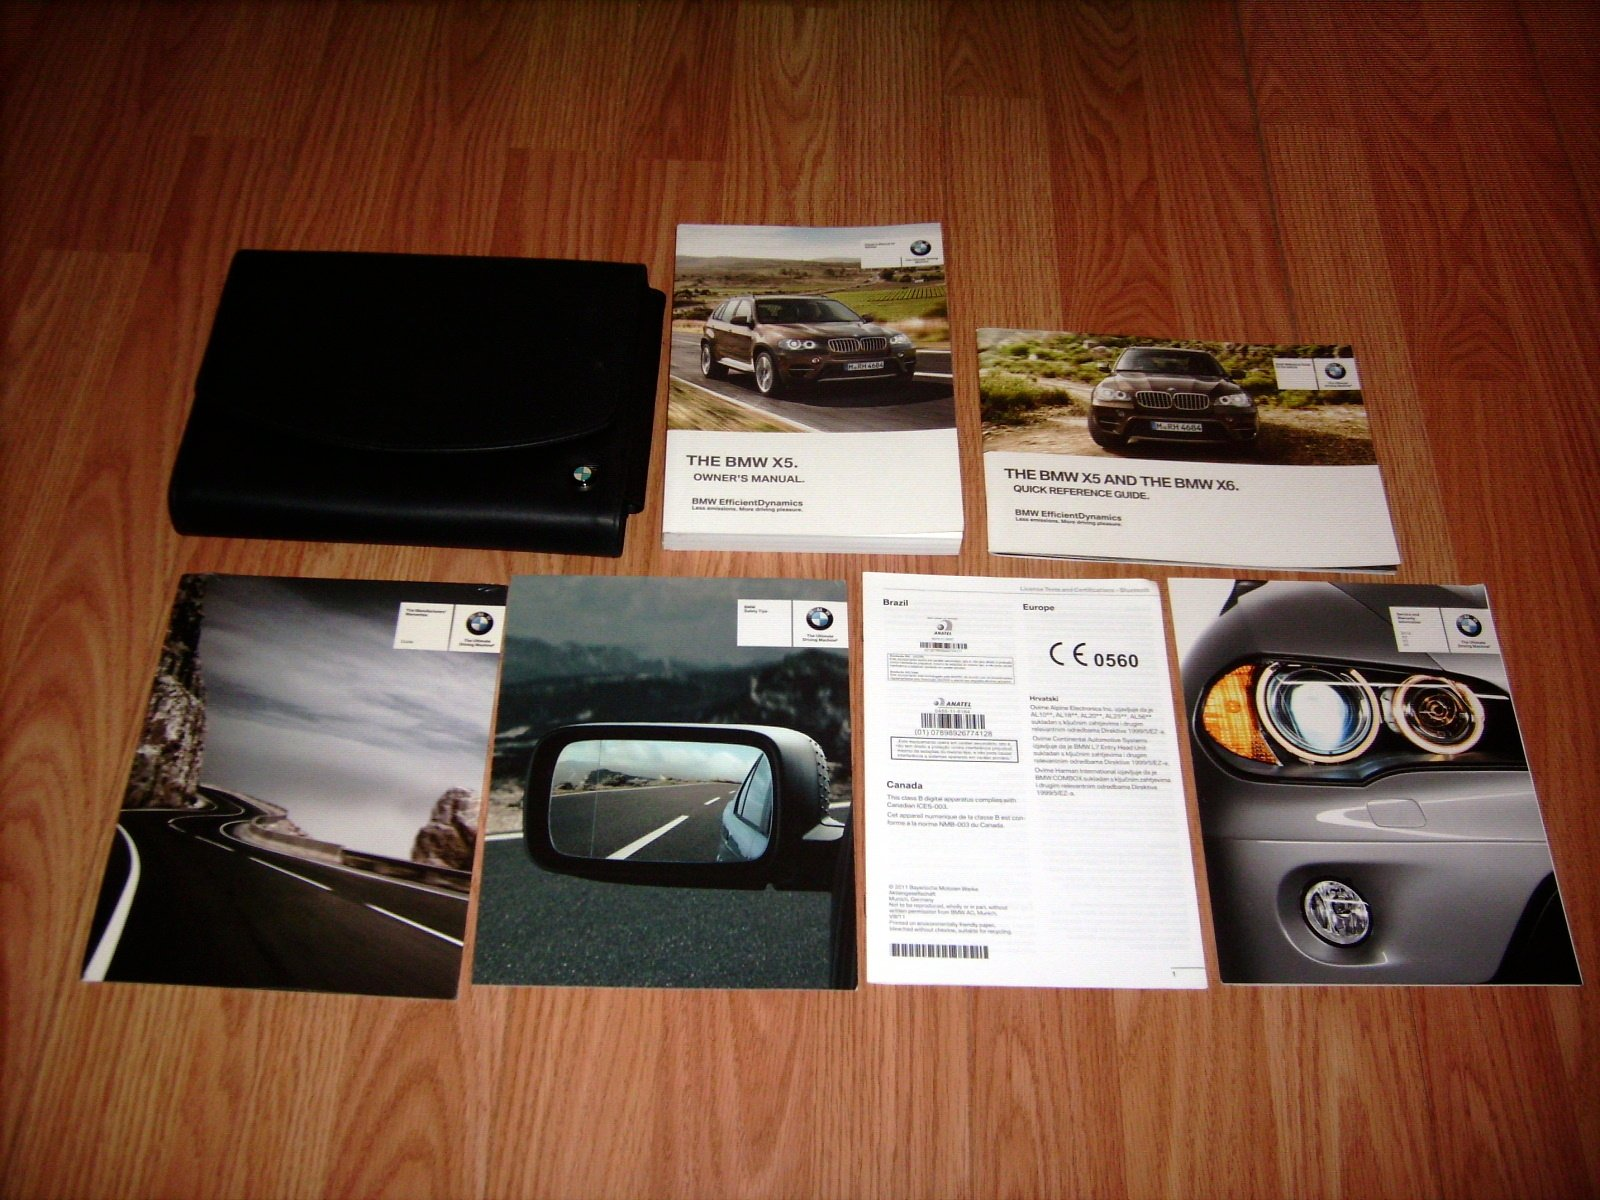 2012 bmw x5 owners manual